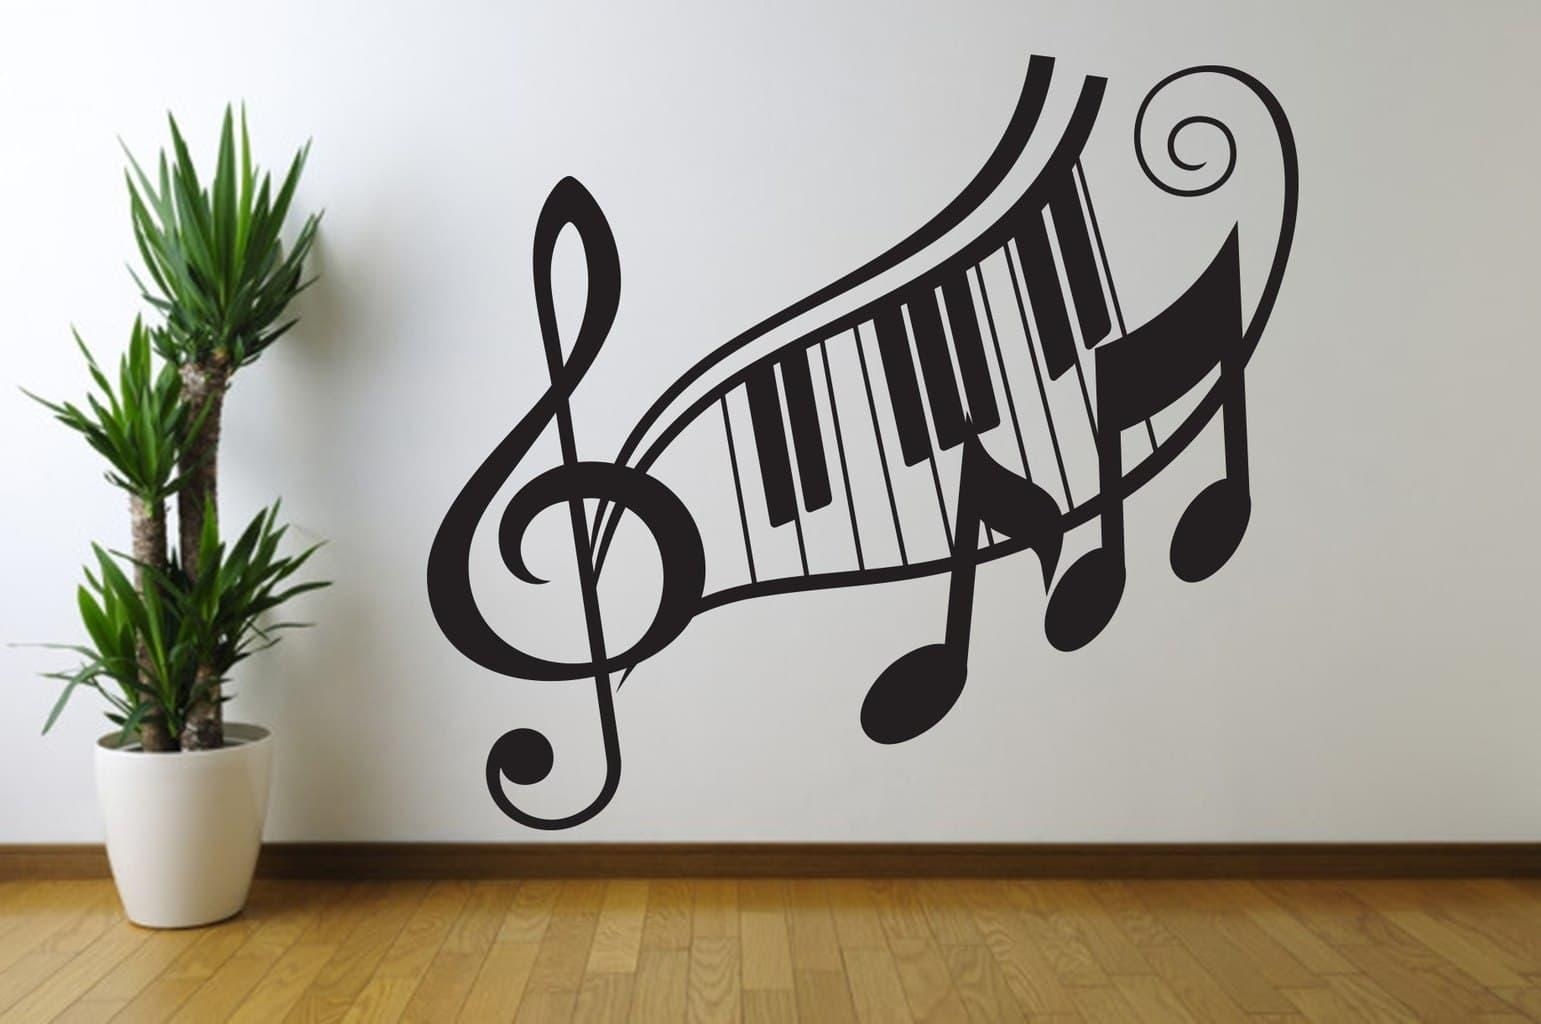 Note Treble Clef Wall Art Decal in Music Note Art for Walls